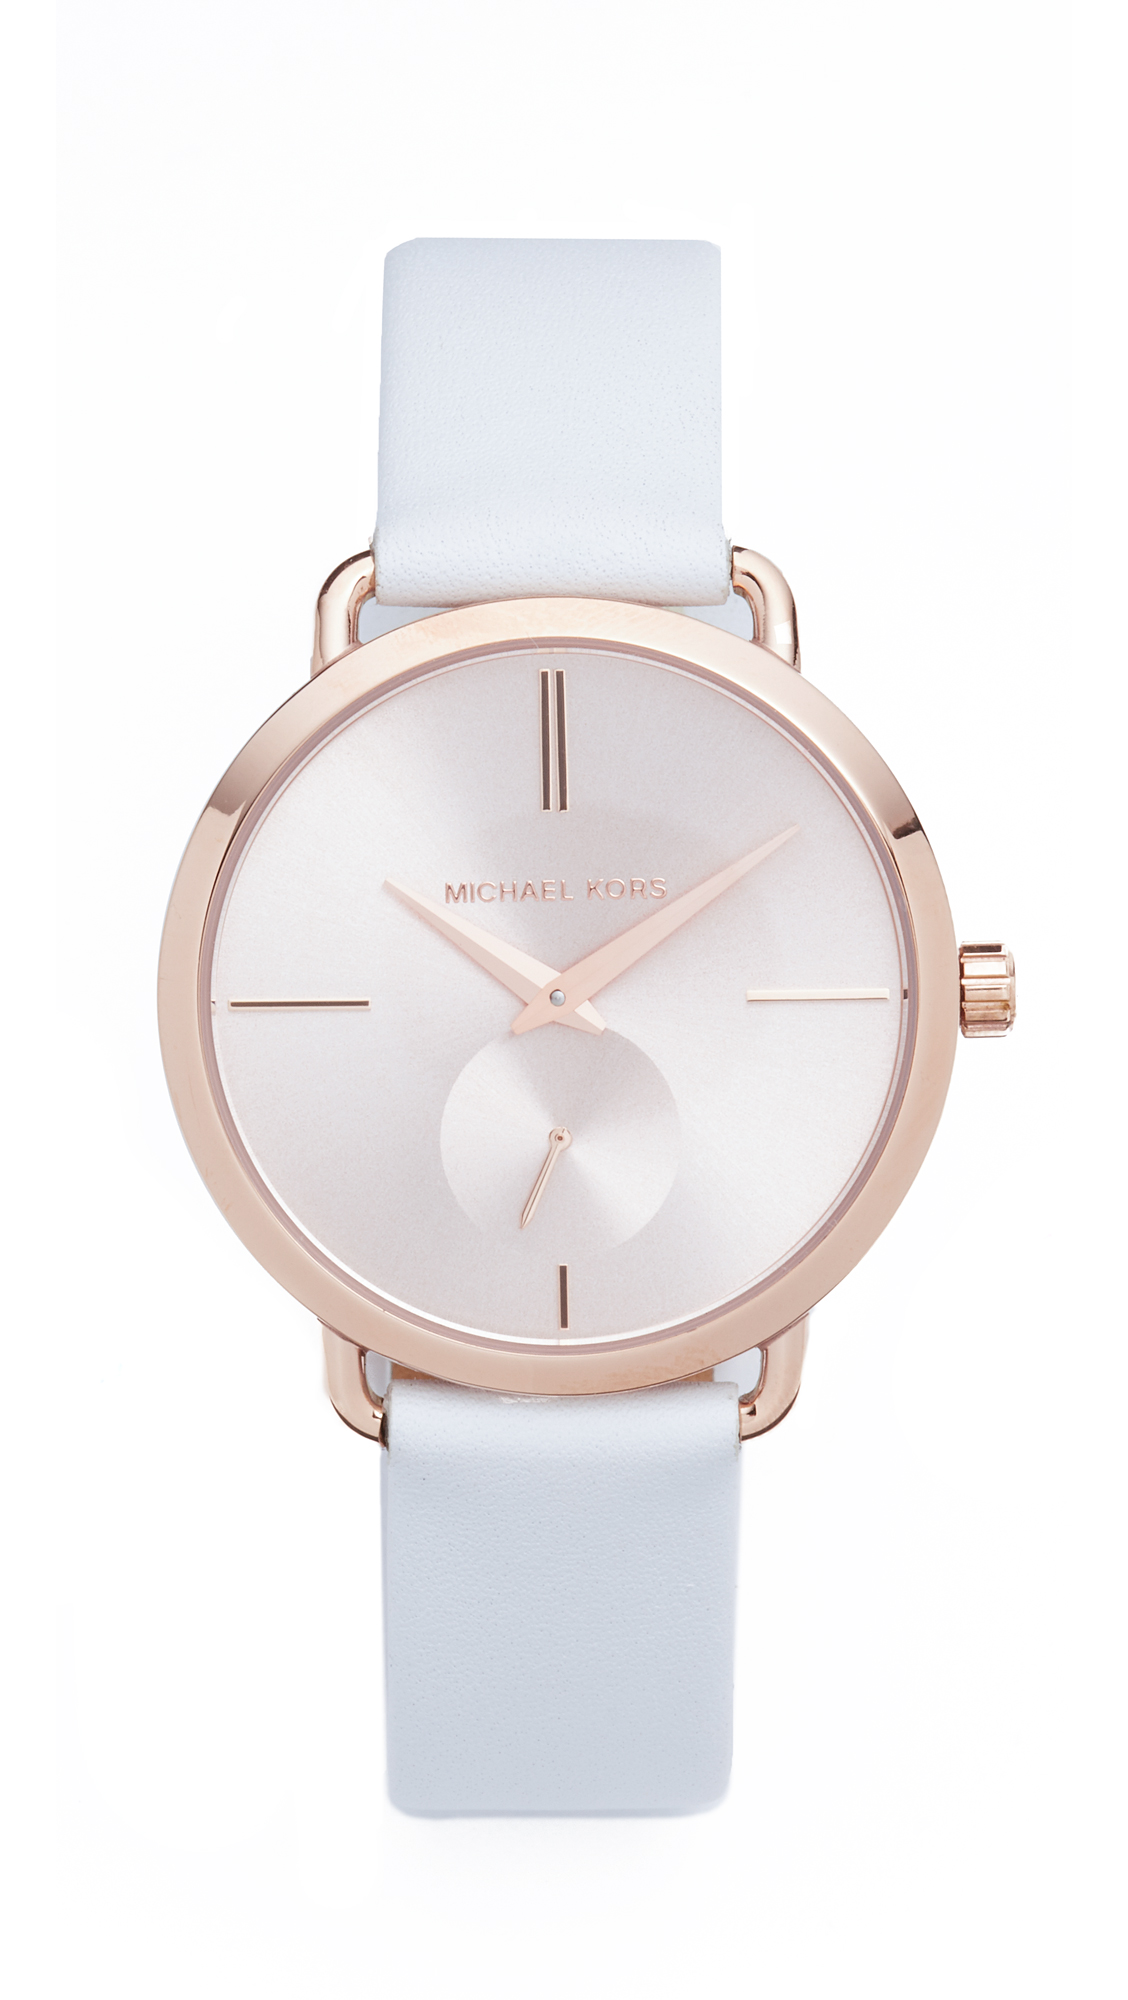 michael kors female michael kors partia leather watch rose goldwhite